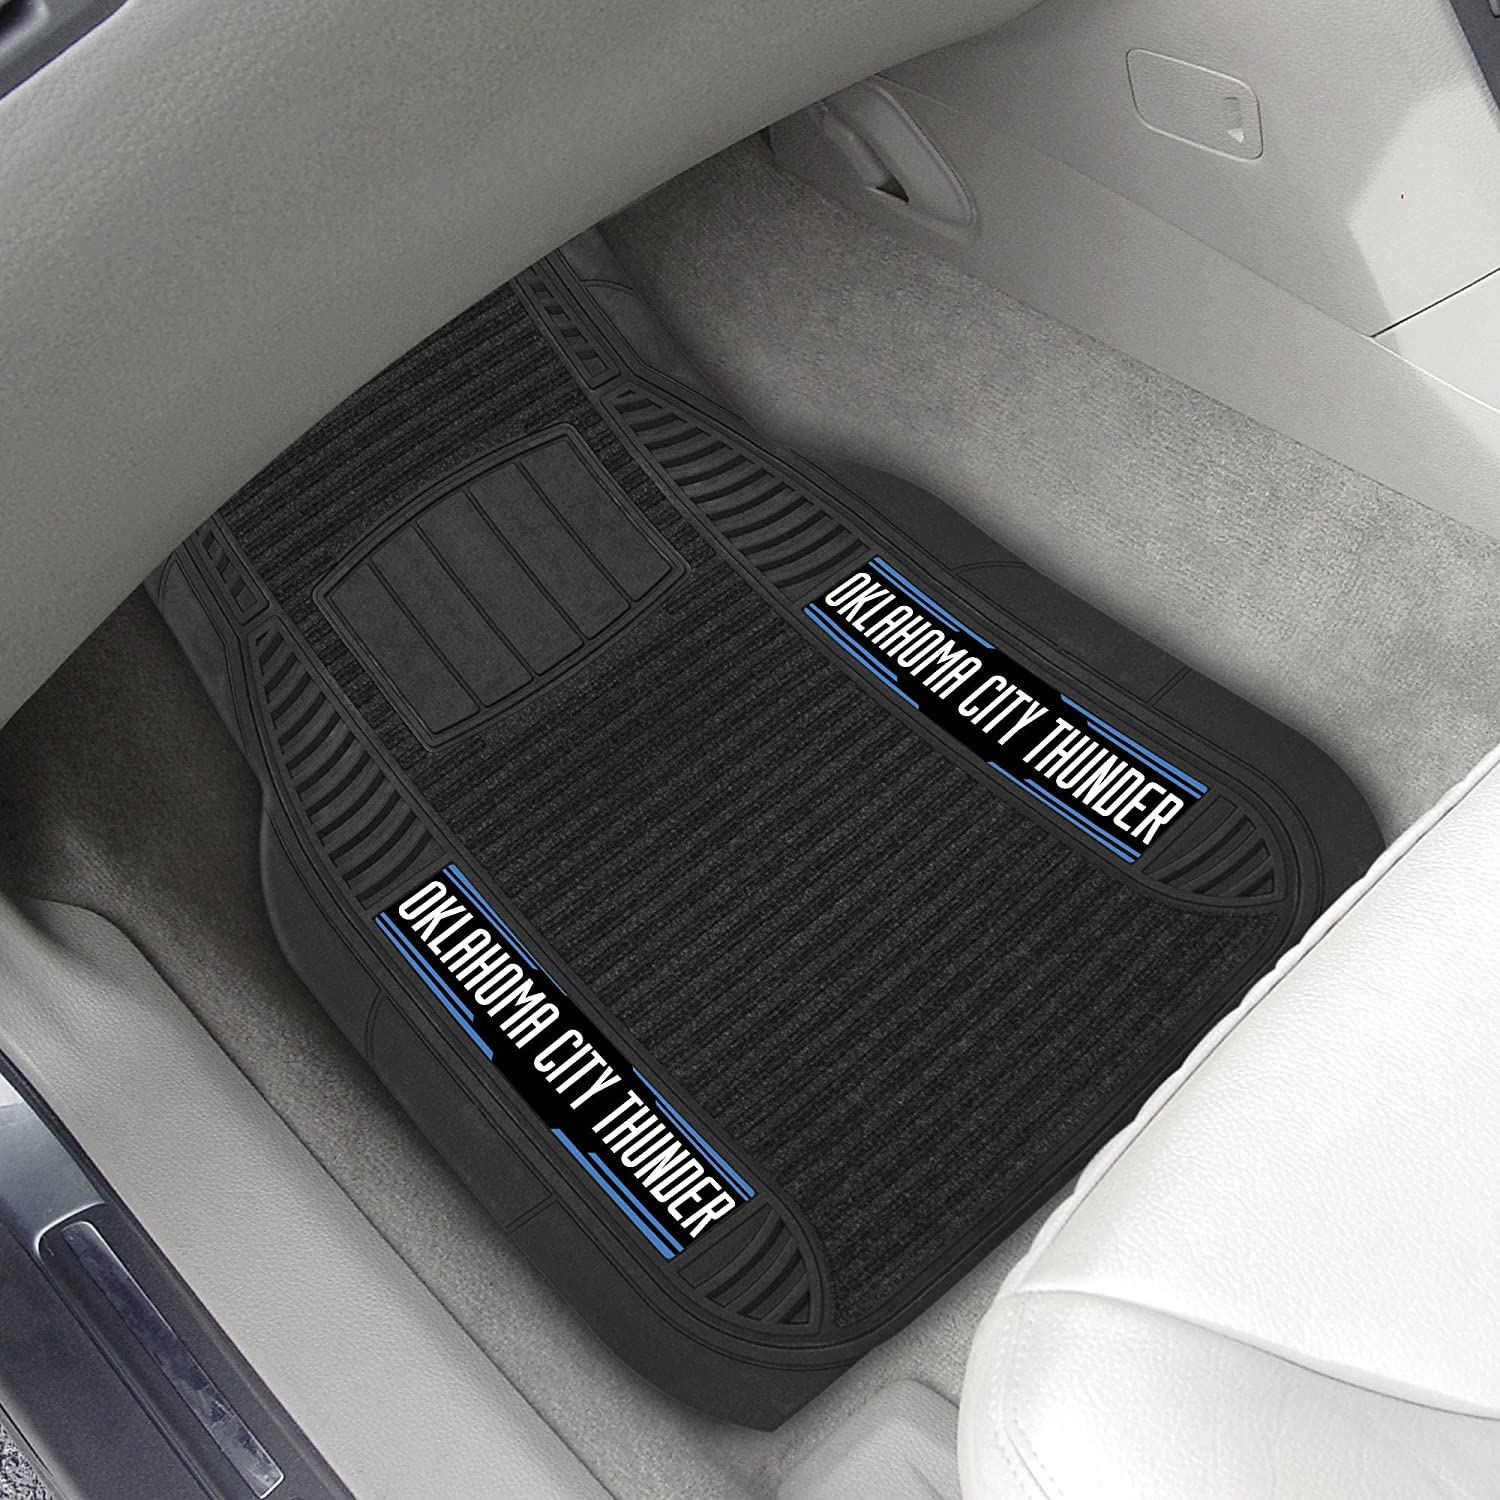 GGBAILEY D2855A-F1A-BLK/_BR Custom Fit Car Mats for 2000 2001 Plymouth Neon Sedan Black with Red Edging Driver /& Passenger Floor